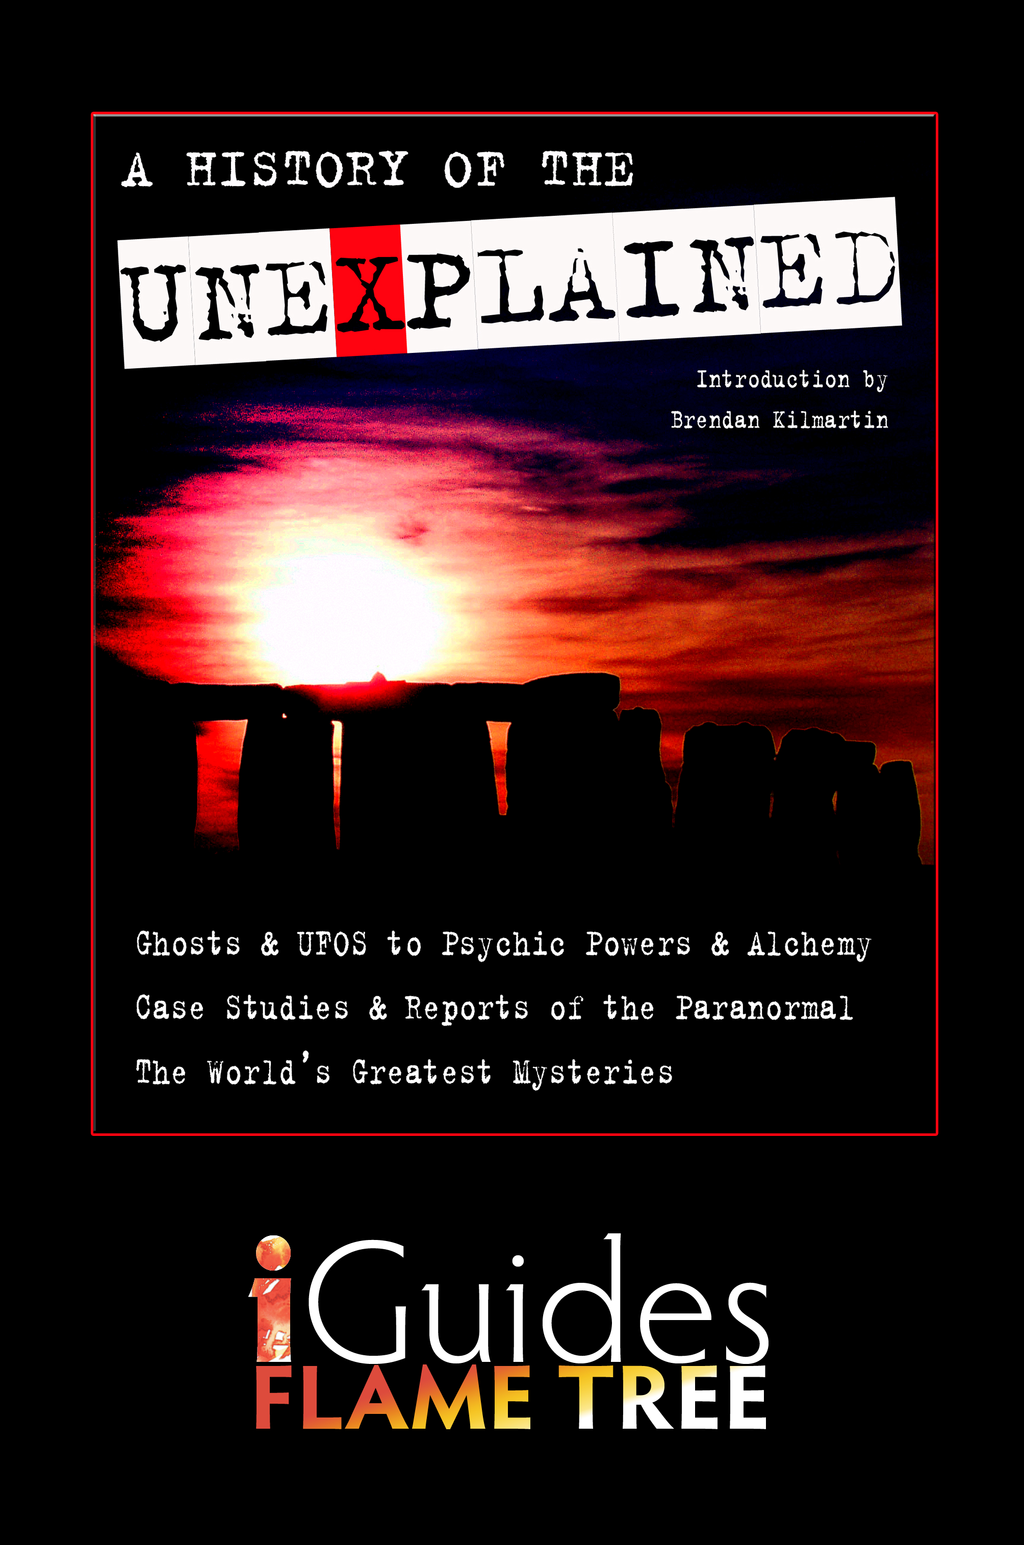 A History of the Unexplained